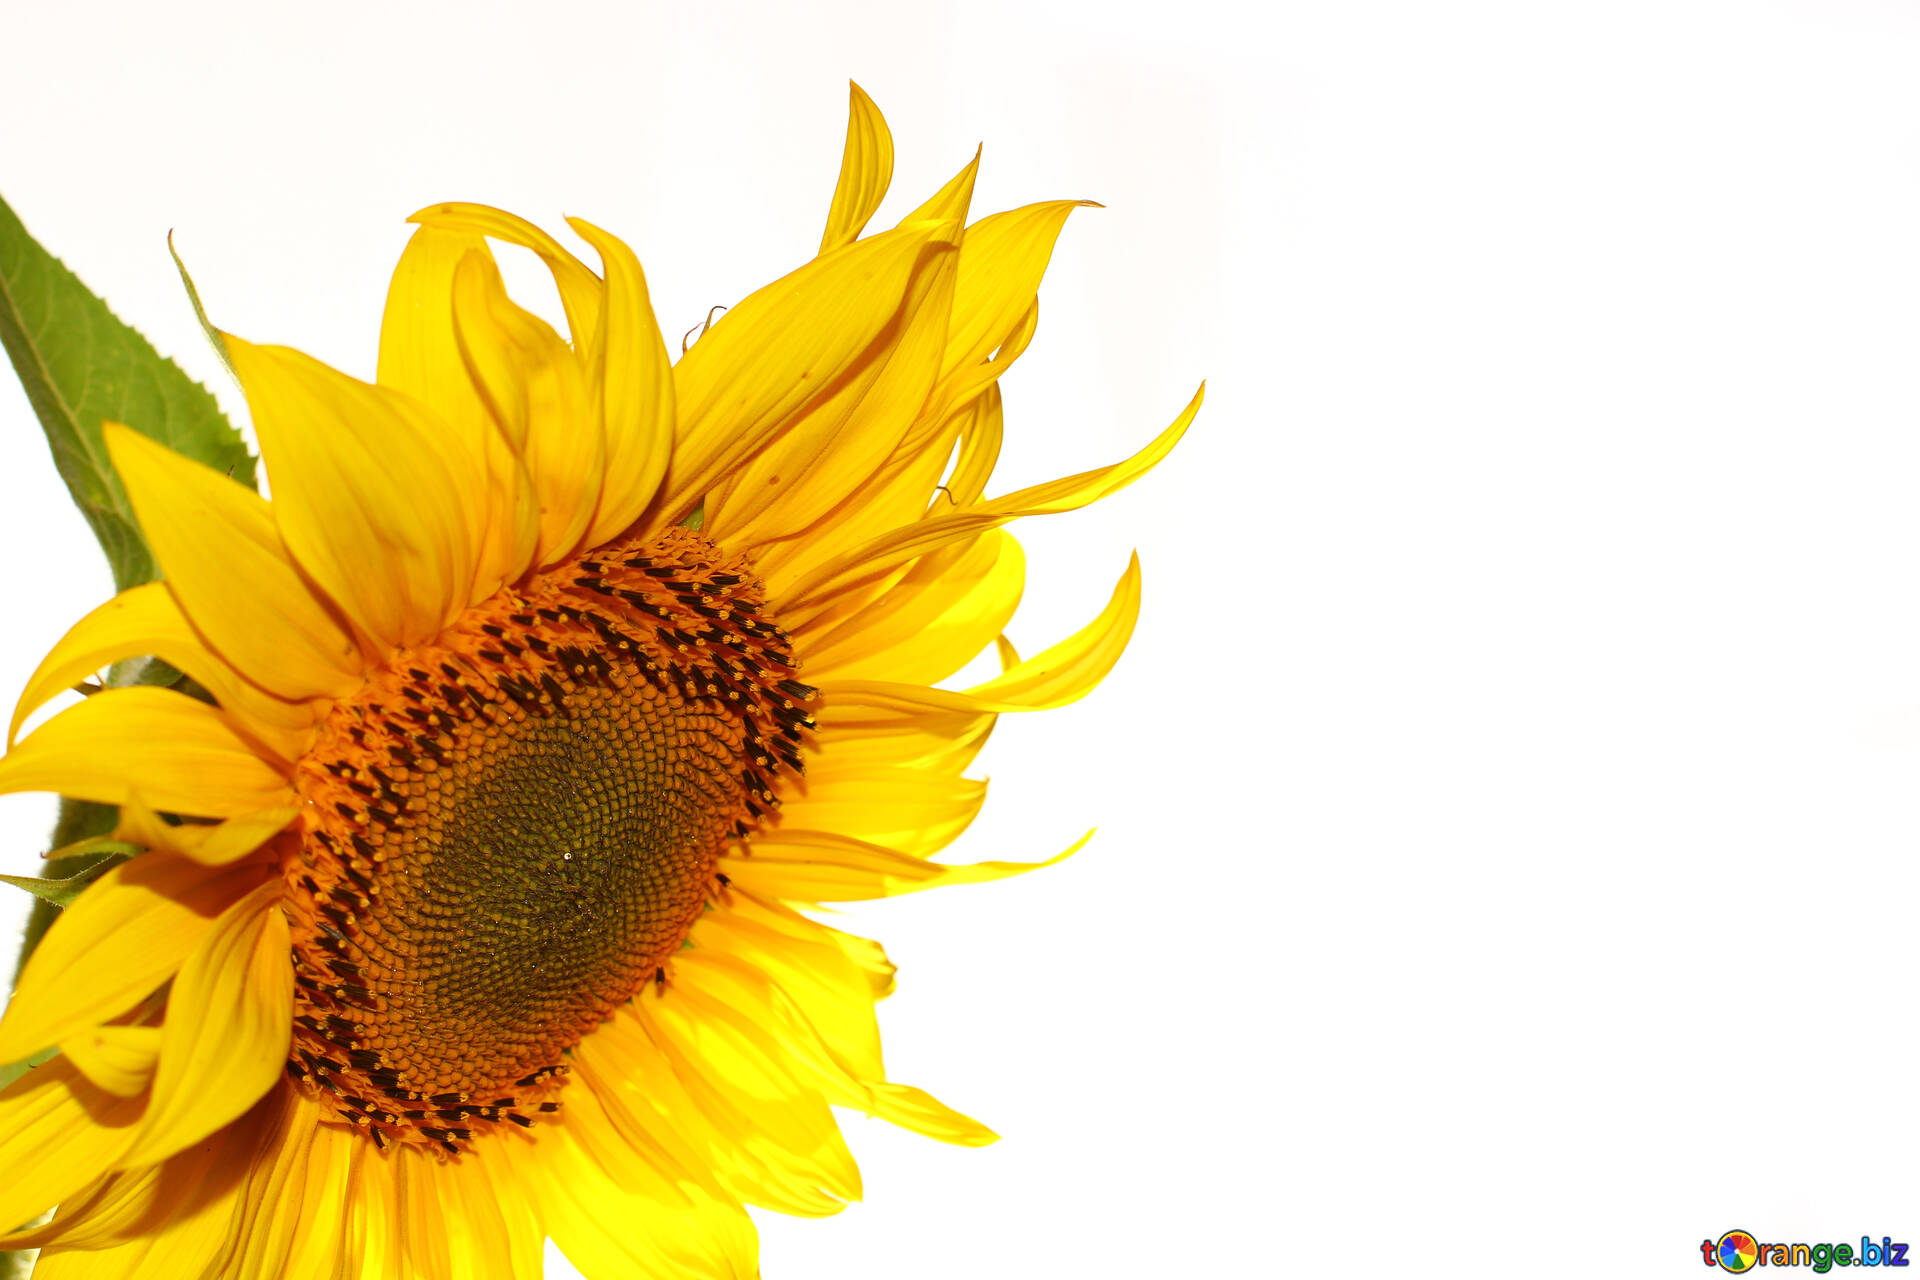 Sunflowers Isolated On White Background Wallpaper On The Desktop